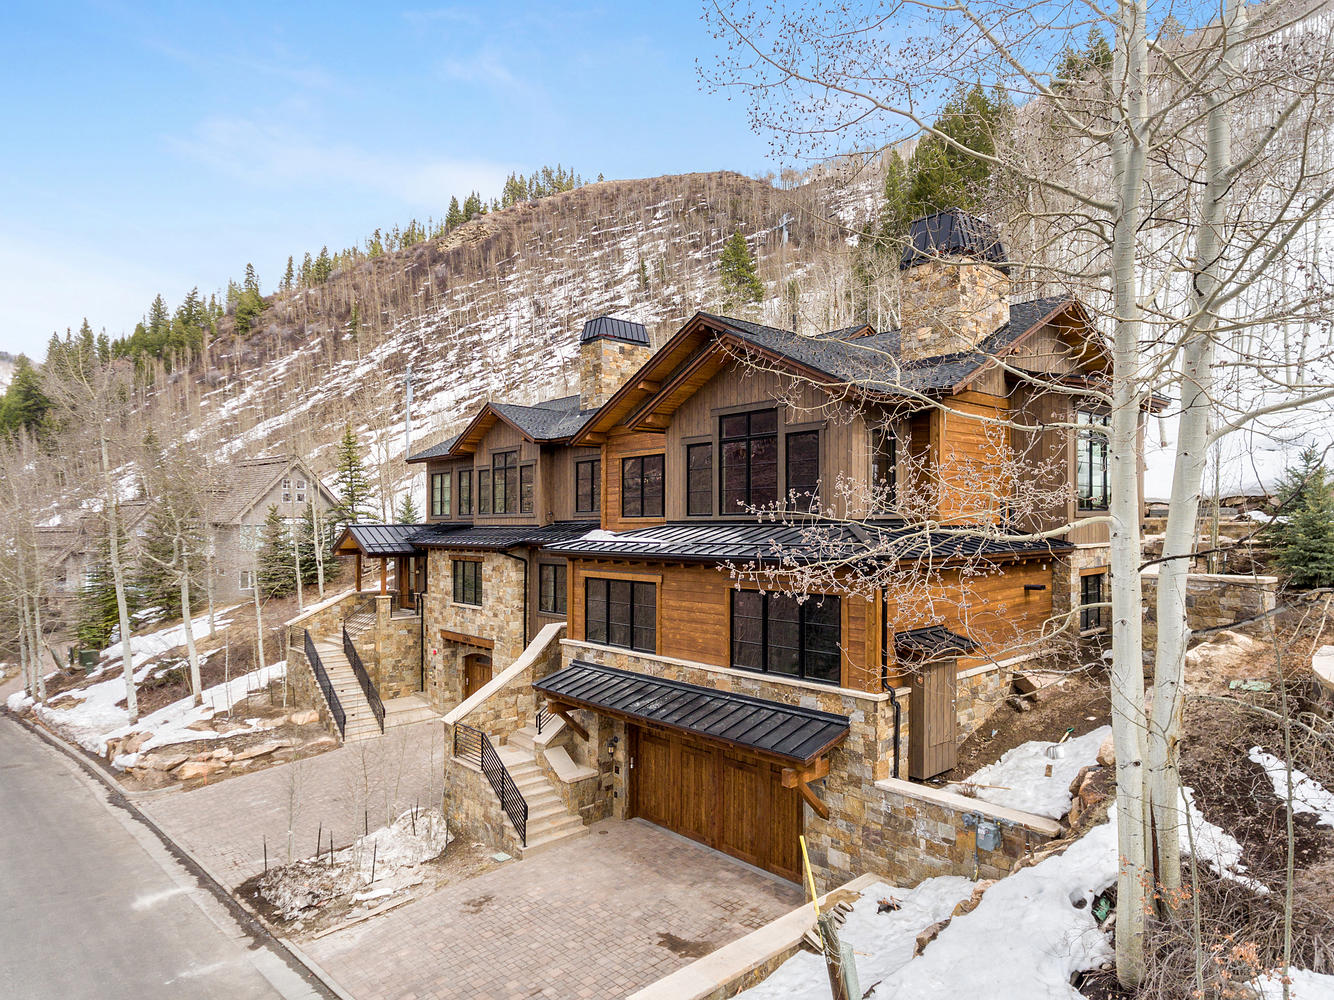 дуплекс для того Продажа на New Mountain Modern Duplex in Cascade Village 1242 Westhaven Circle Cascade Village, Vail, Колорадо, 81657 Соединенные Штаты